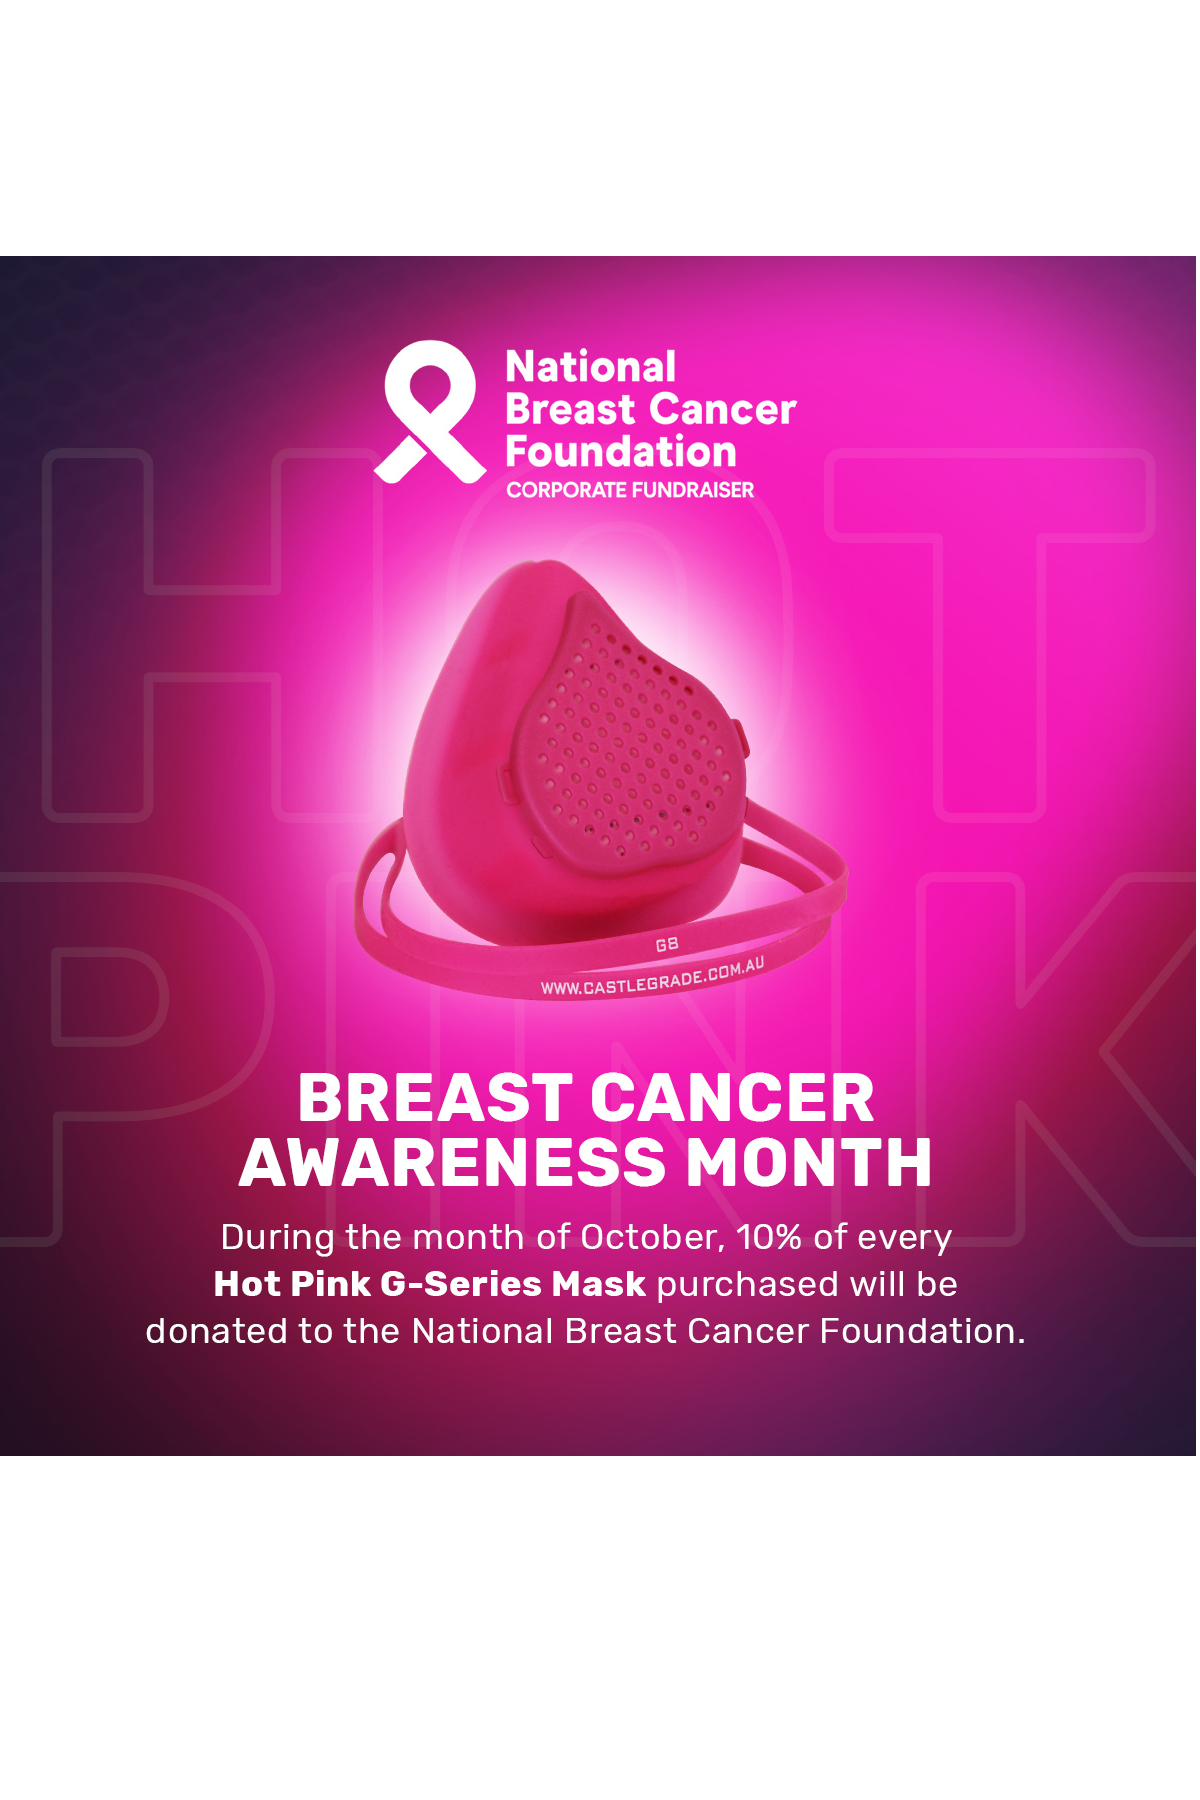 Buy Pink to support Breast Cancer Research this month!